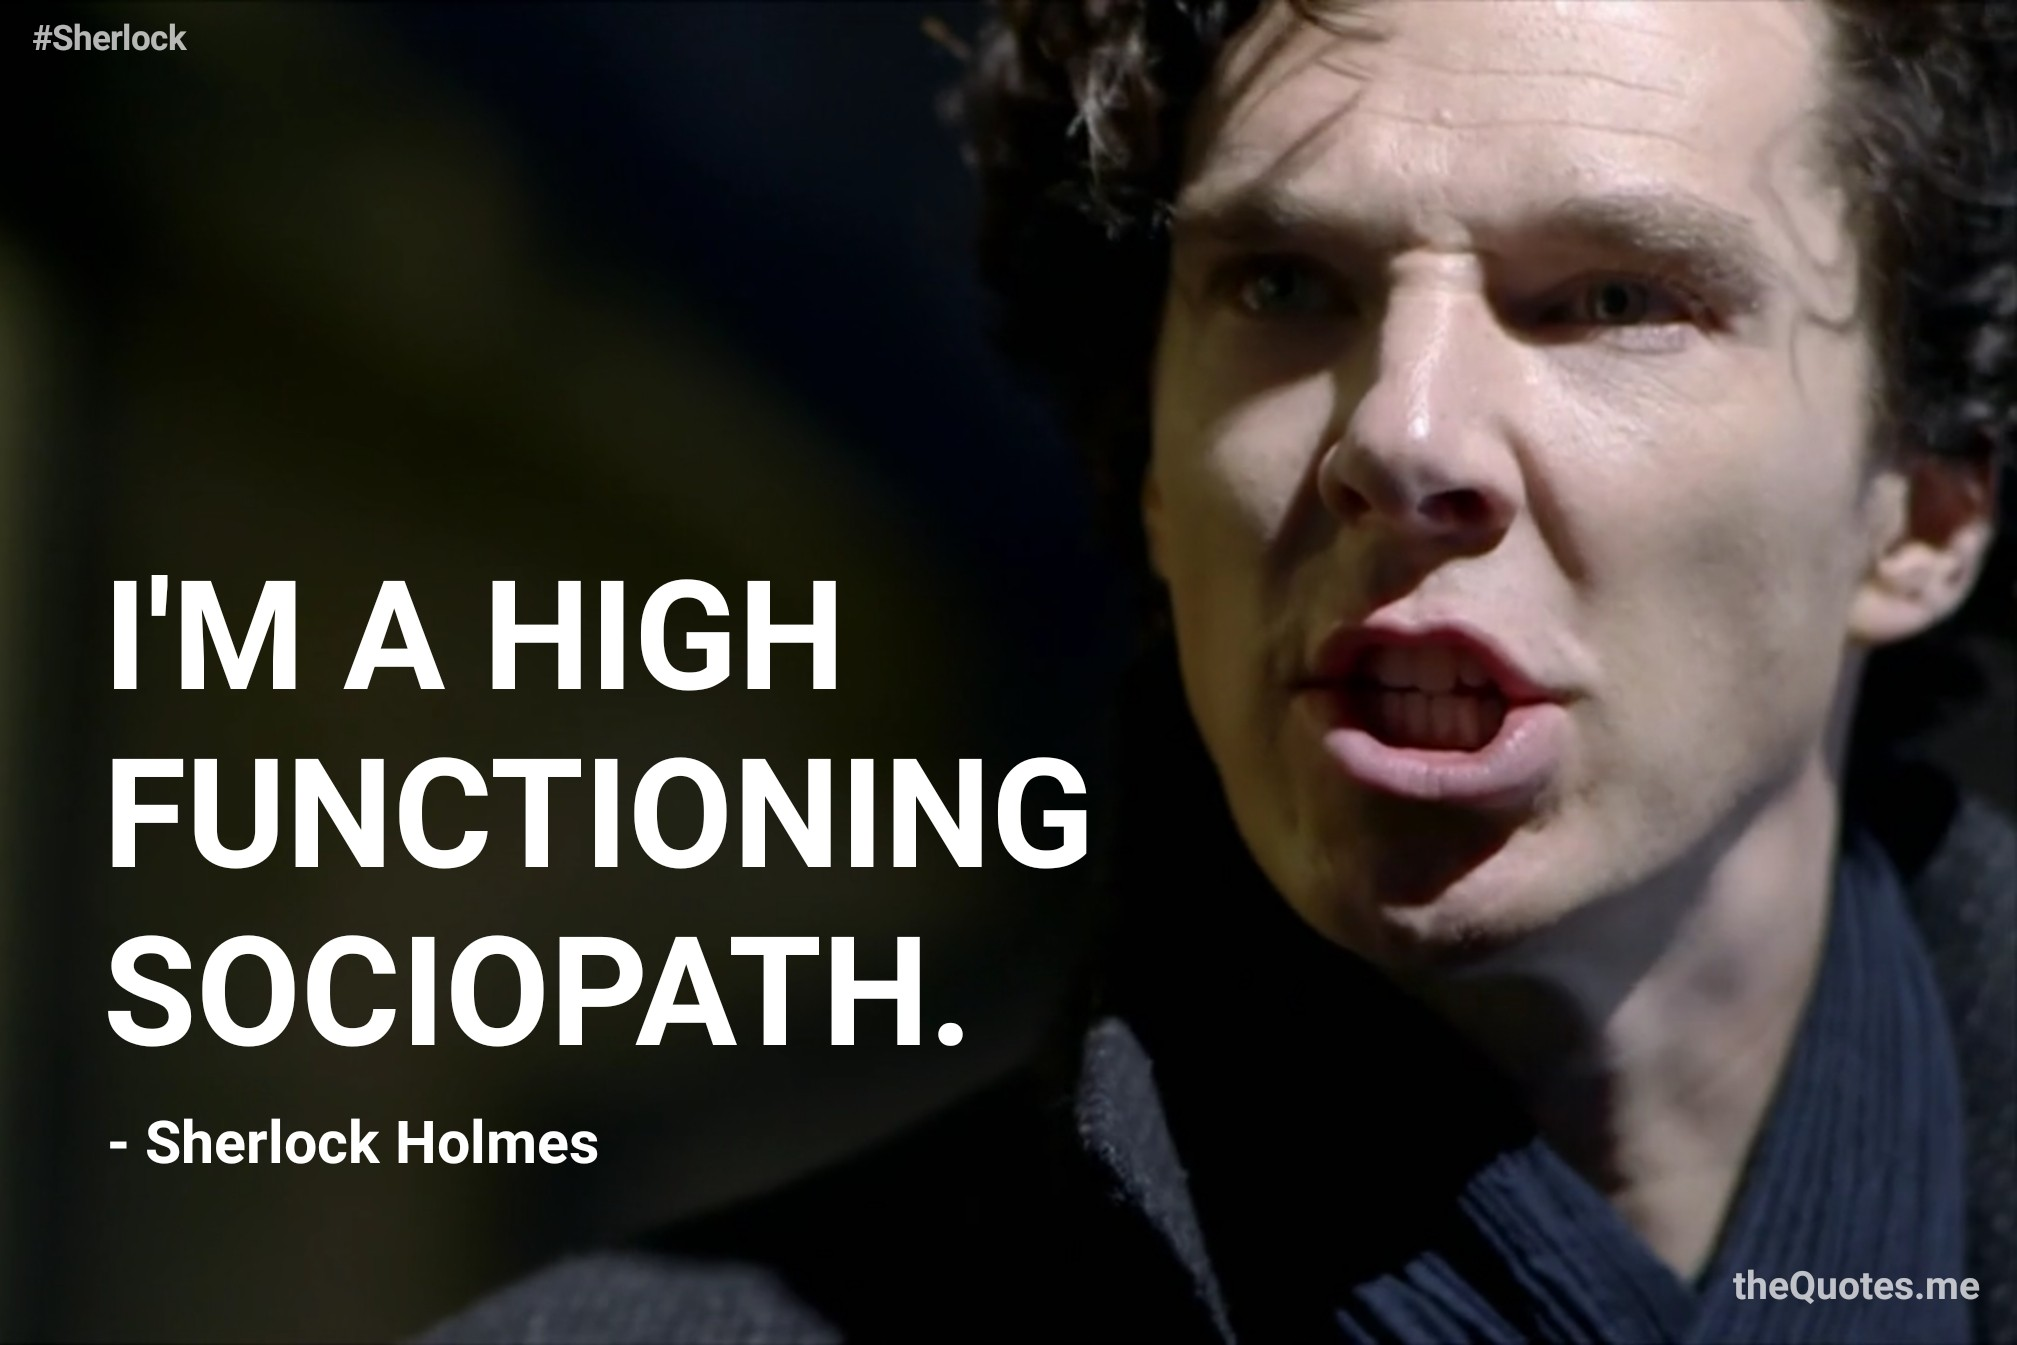 High Functioning Sociopath – The Quotes